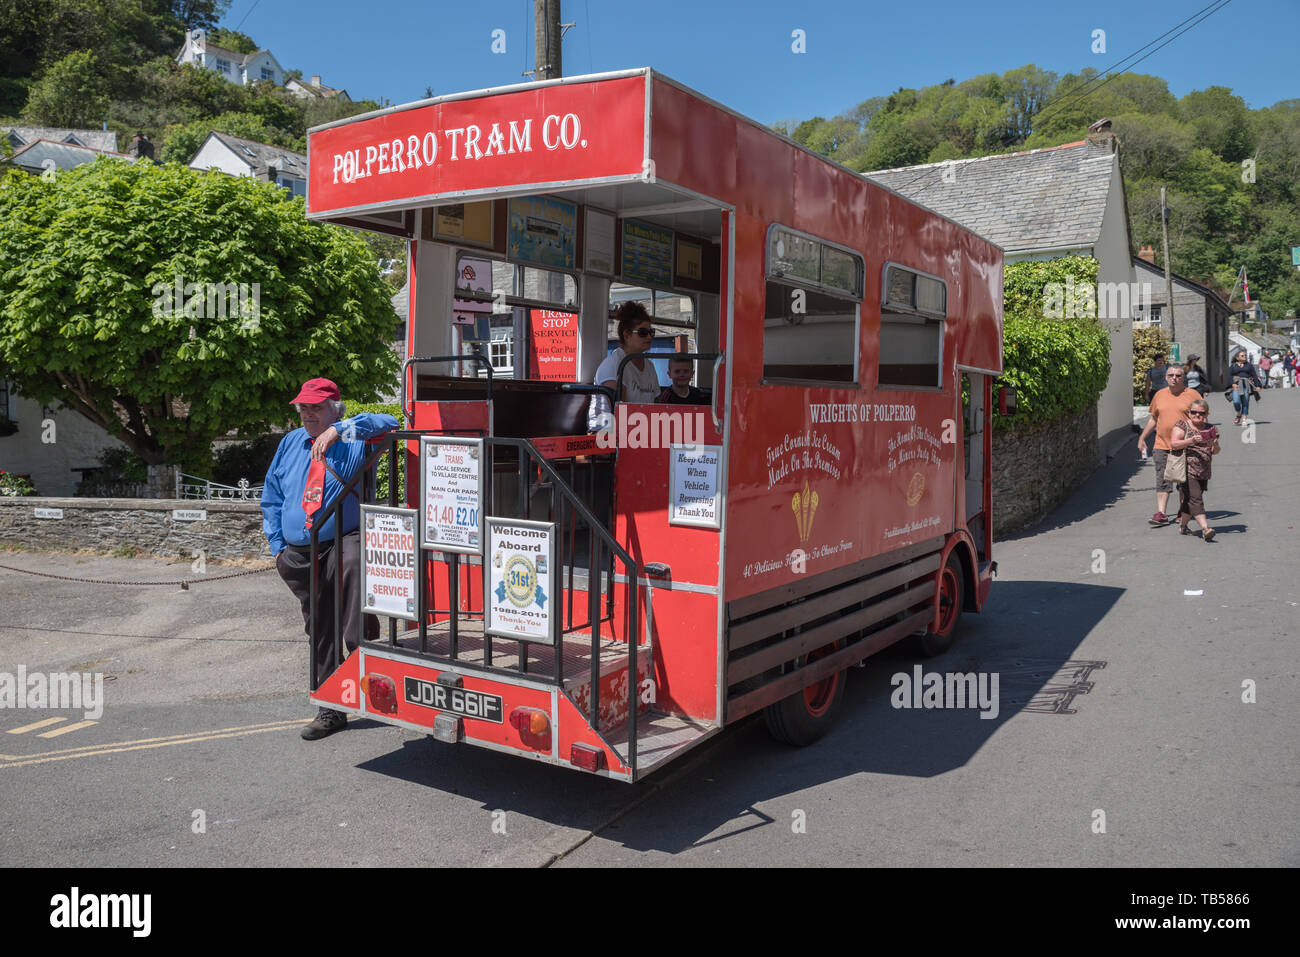 Polperro public transport. Vistors have to park their cars in the car park  outside the village. - Stock Image